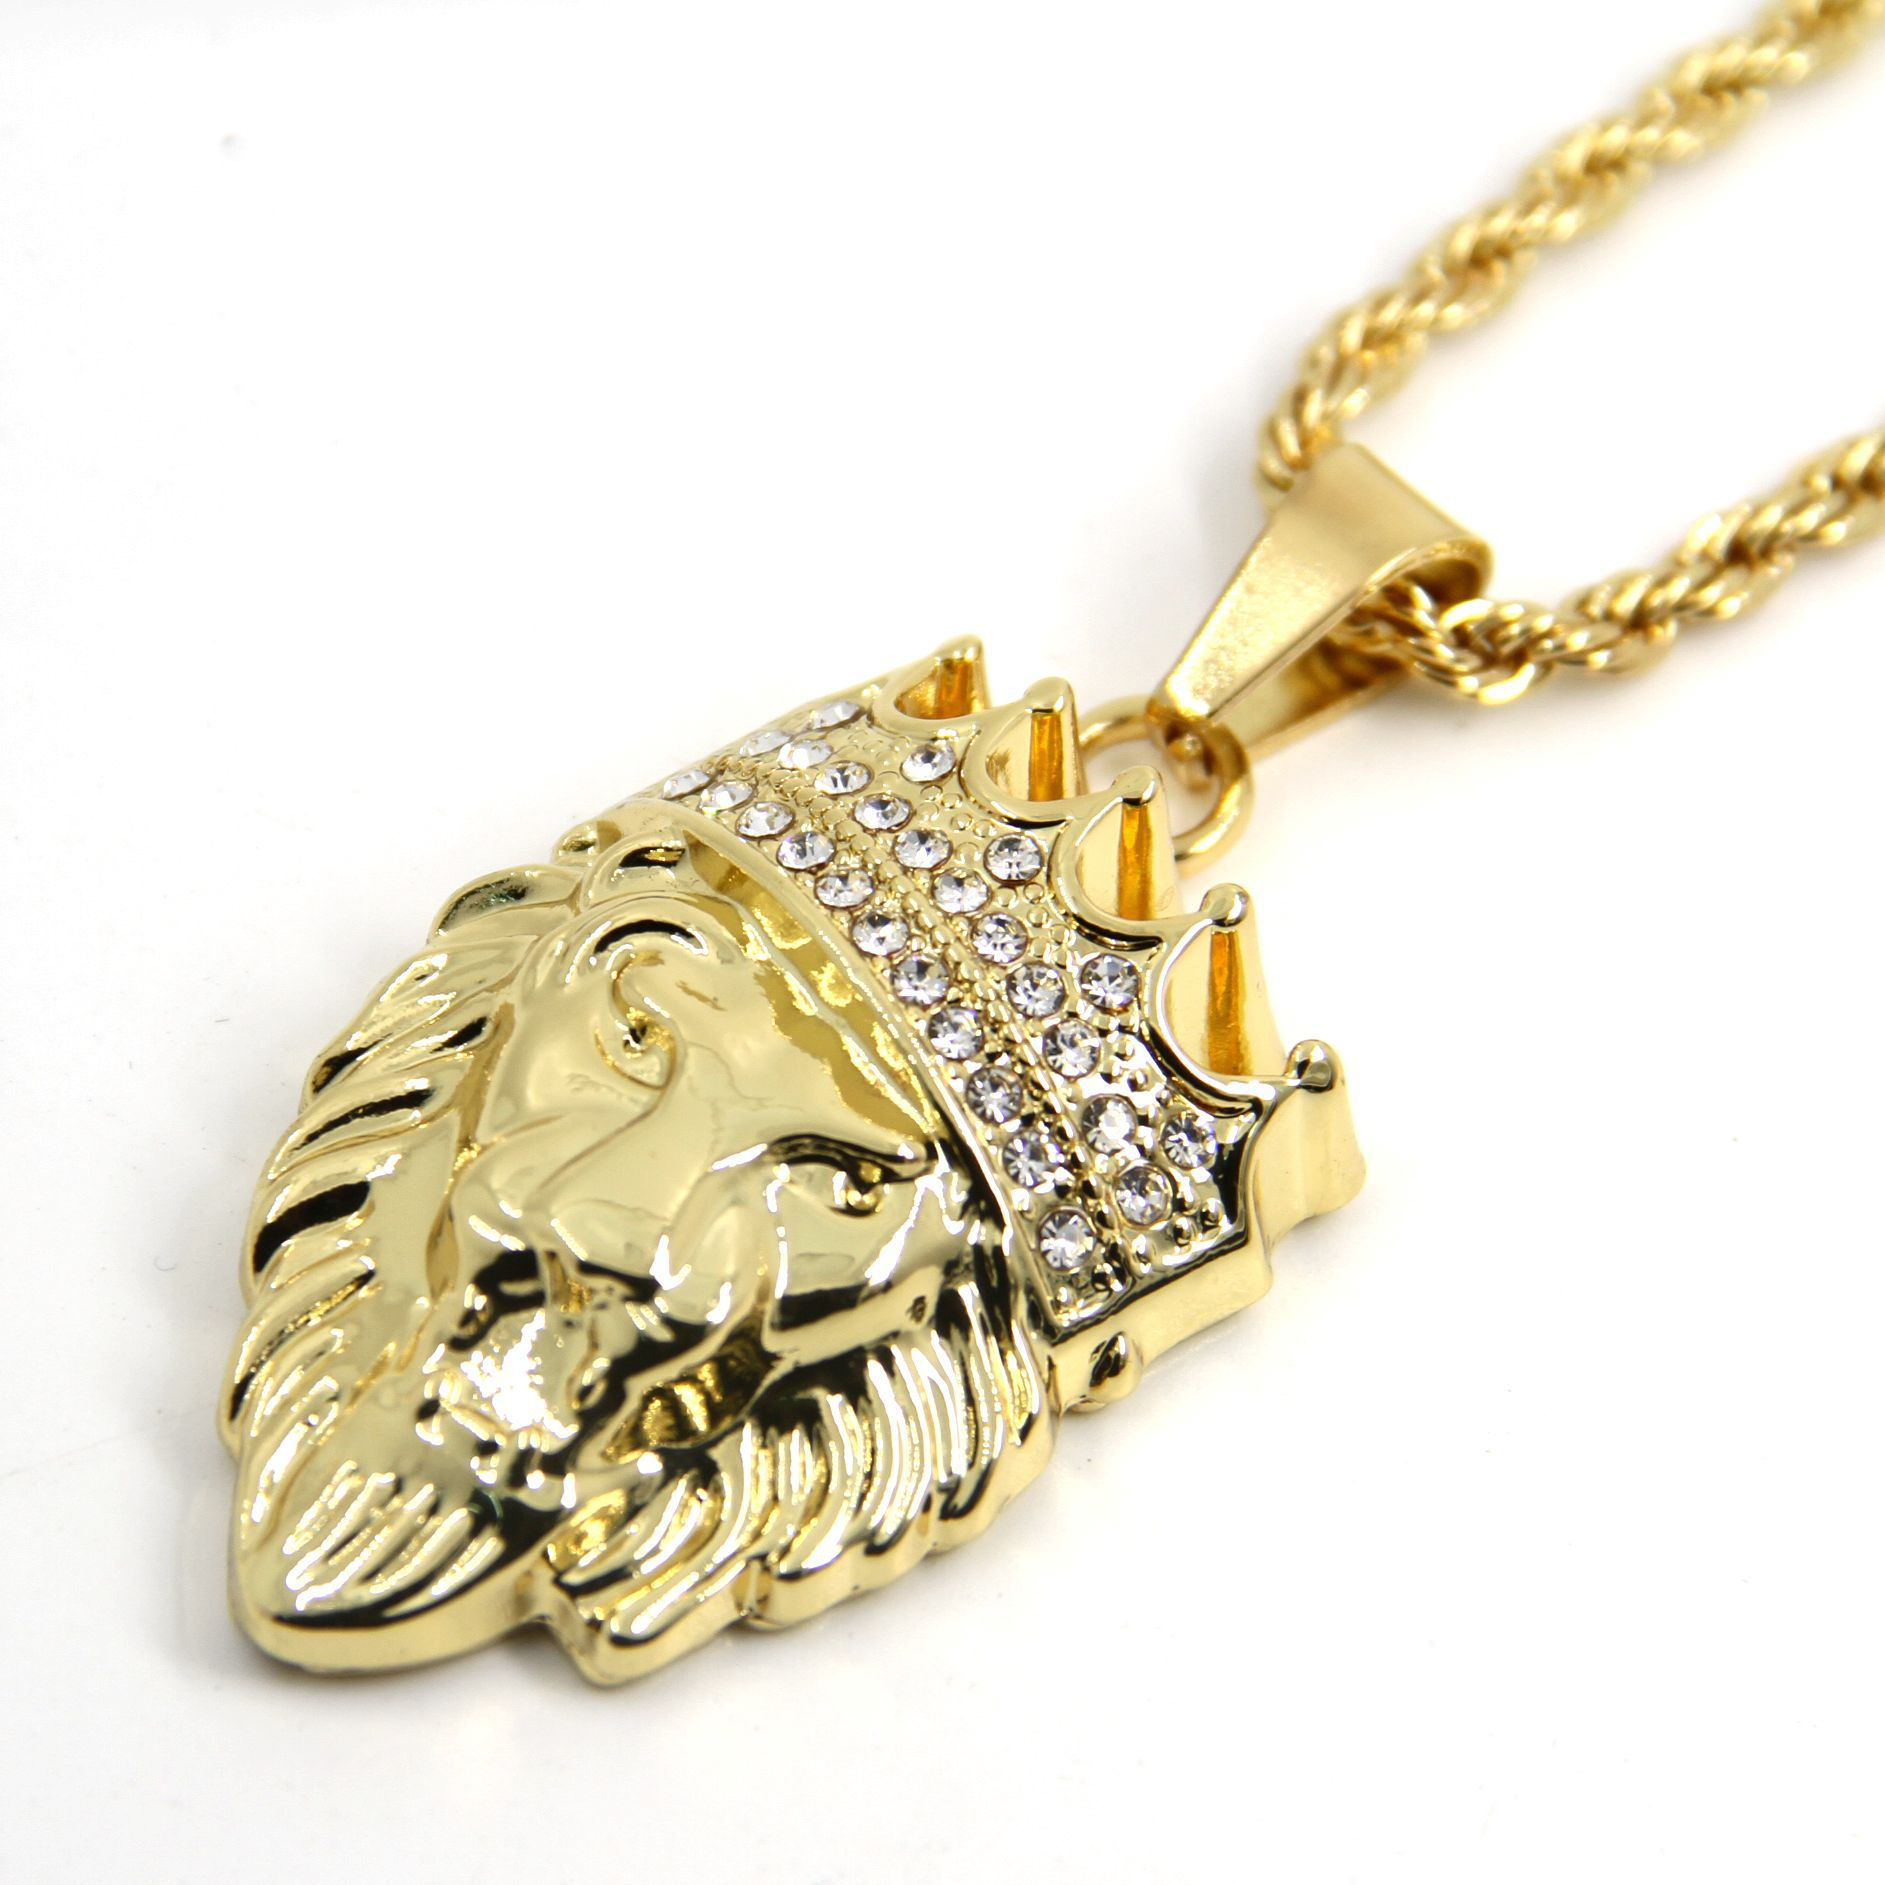 Men's Real Crown Lion KINGS LANDING Masculine Pendant Necklace with FREE Chain 23 inches Men Jewelry CX460